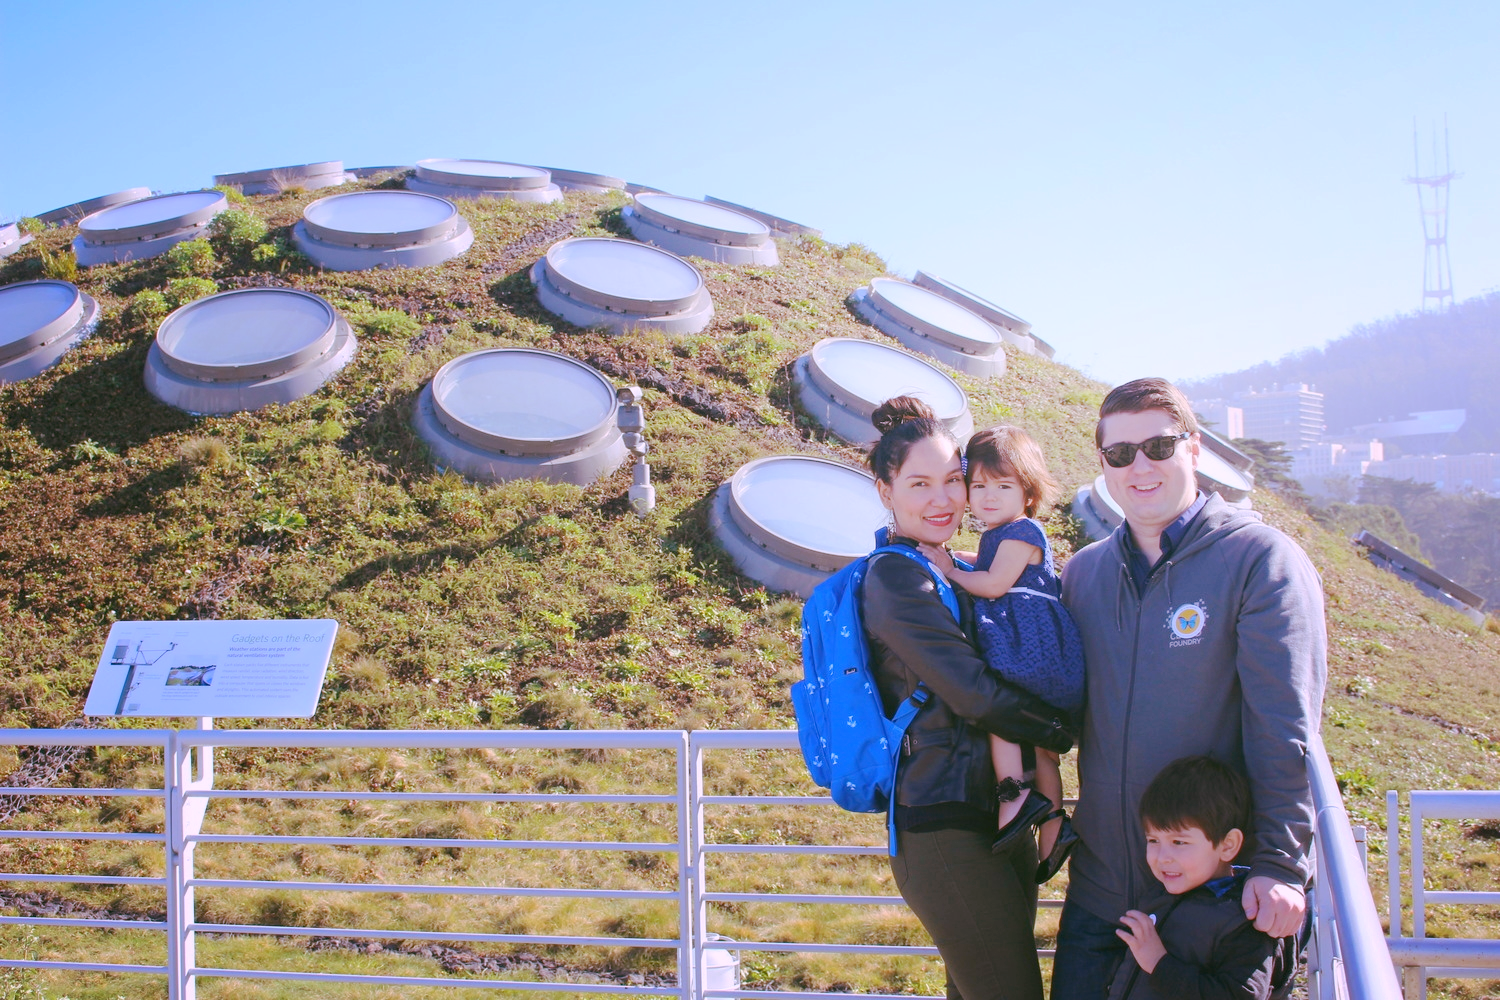 Our family at the Living Roof of CalAcademy.